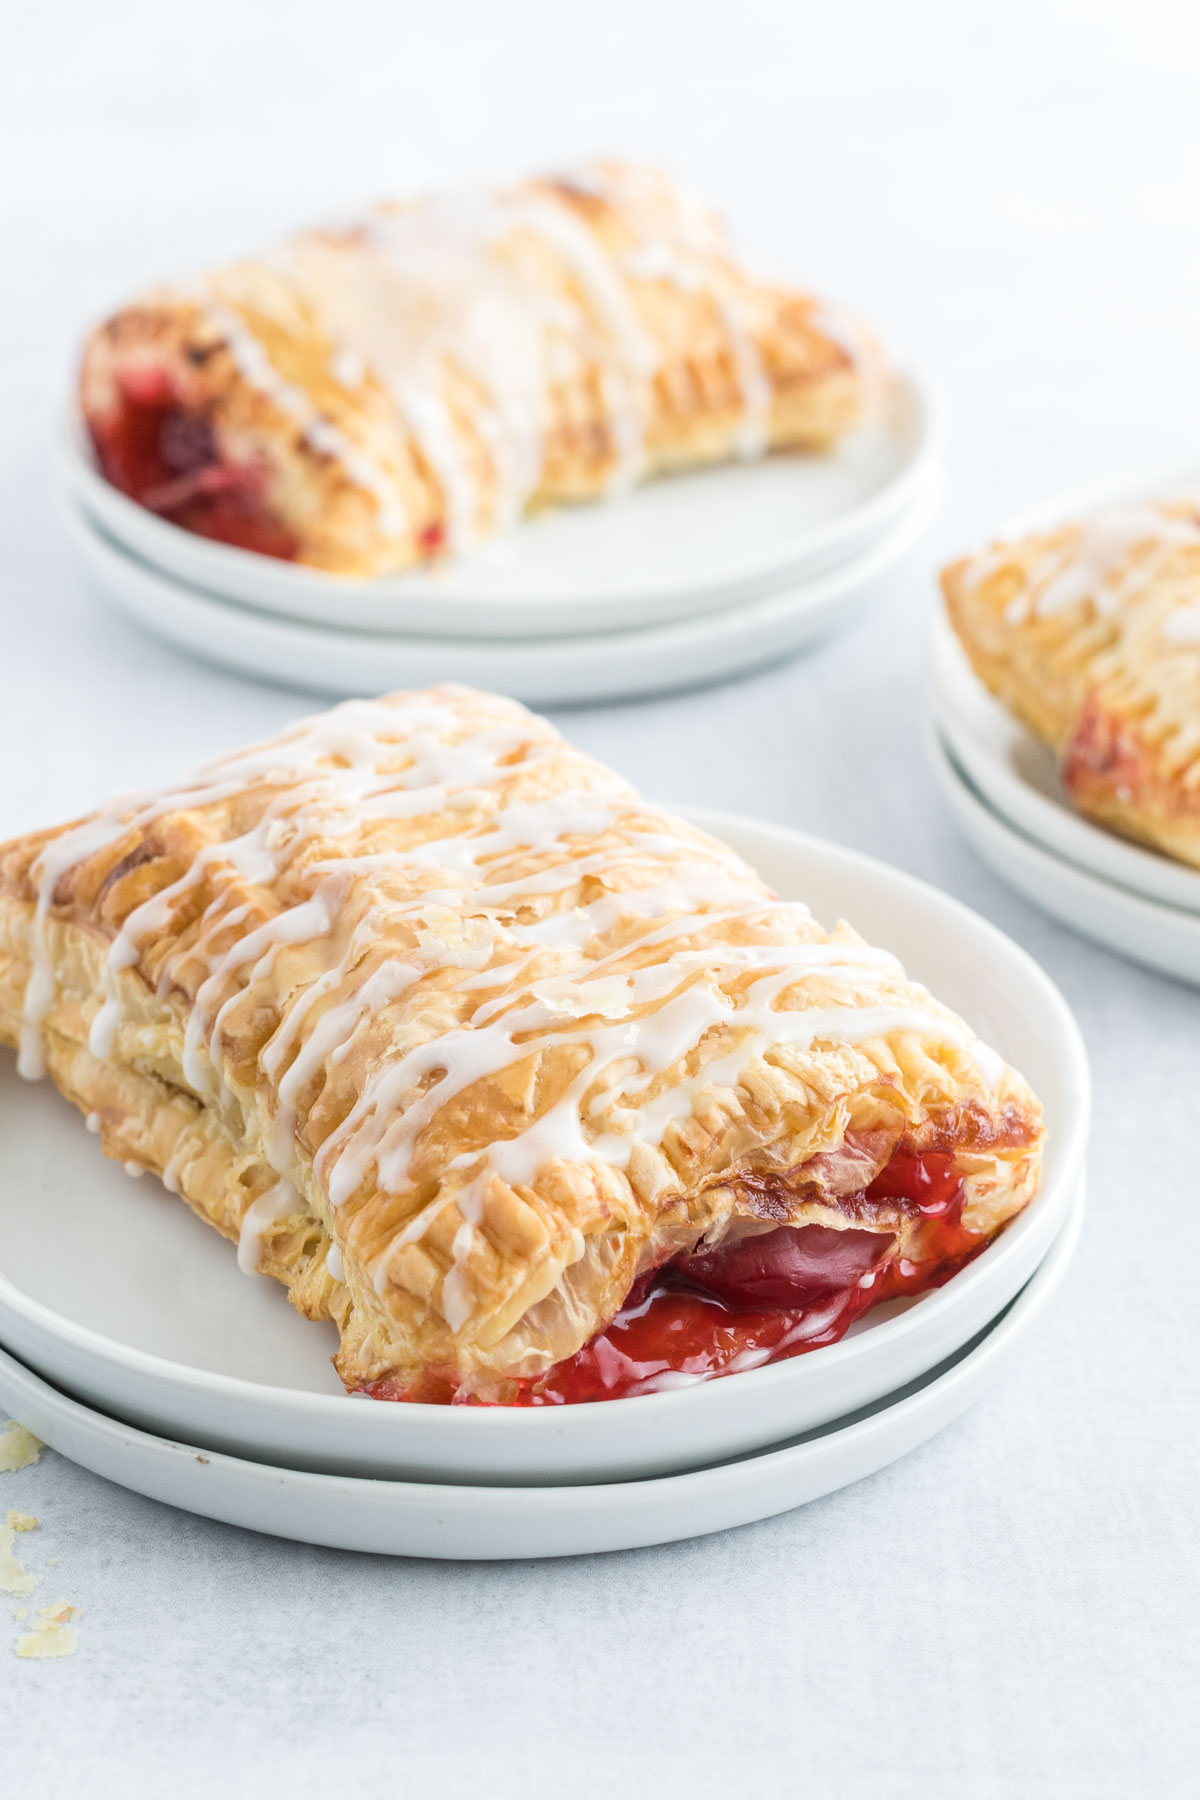 A cherry turnover with icing drizzle on a small plate.